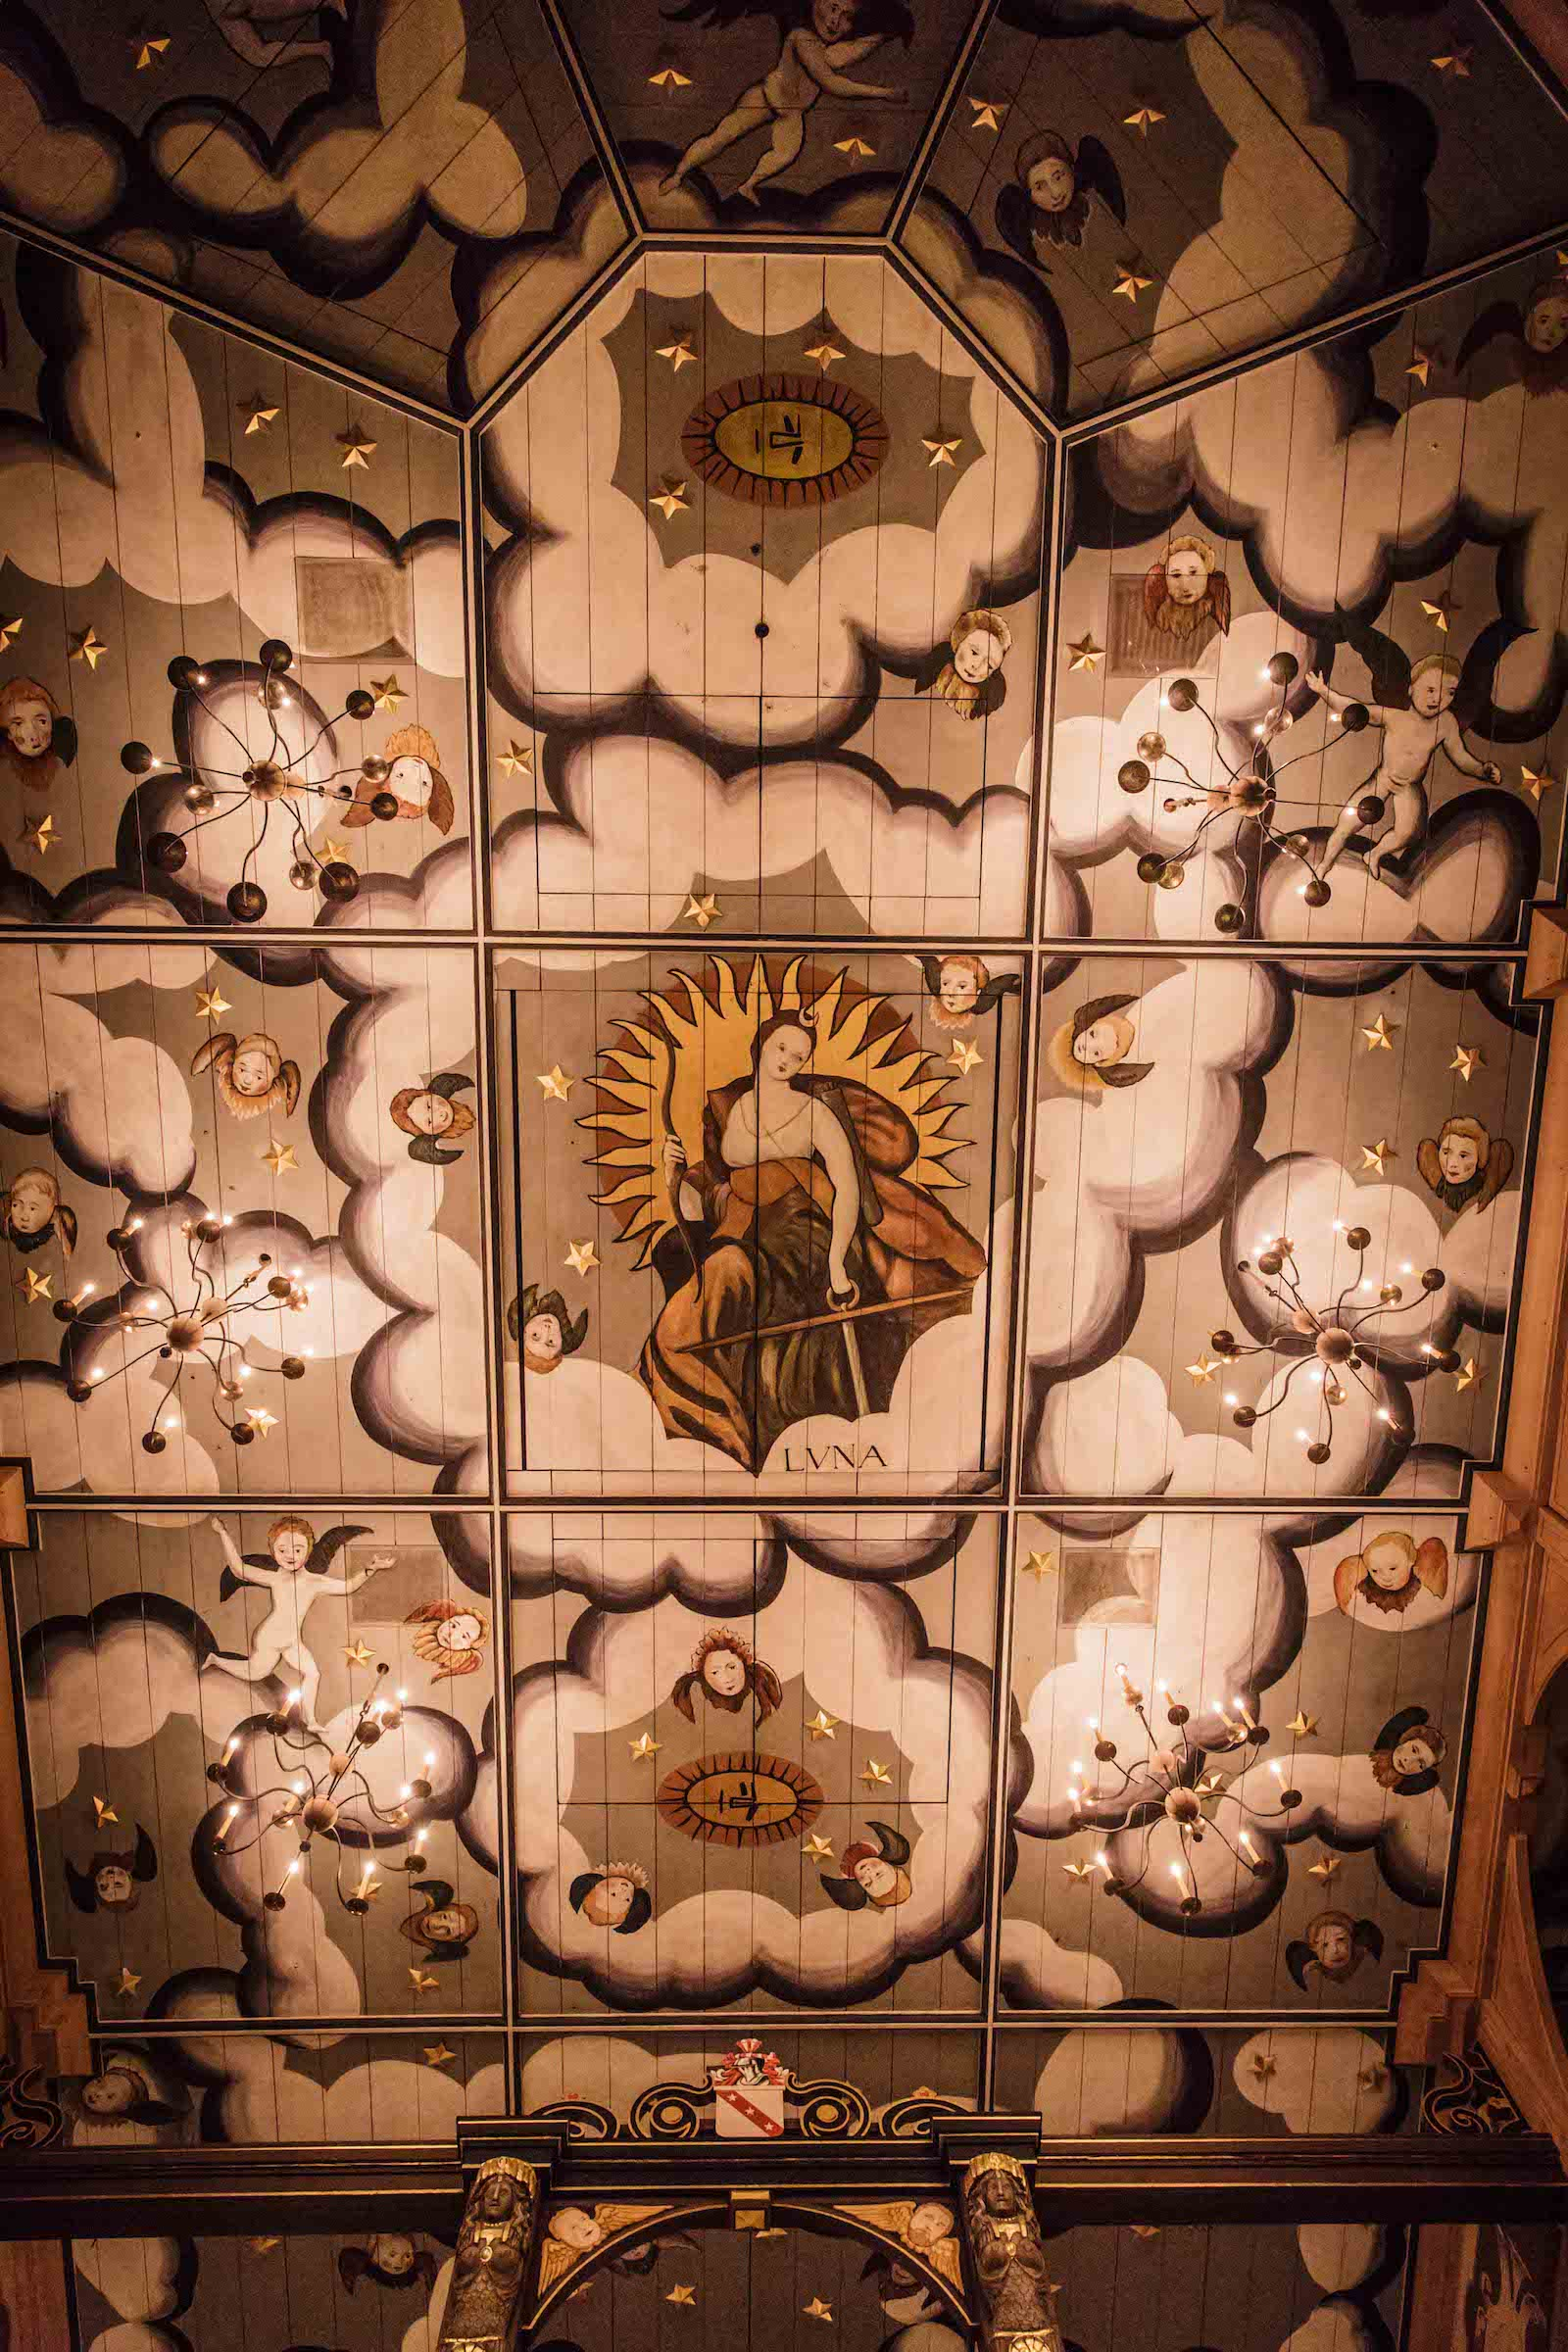 An intricately painted ceiling, looking up at it from below, with illustrations of clouds and angels